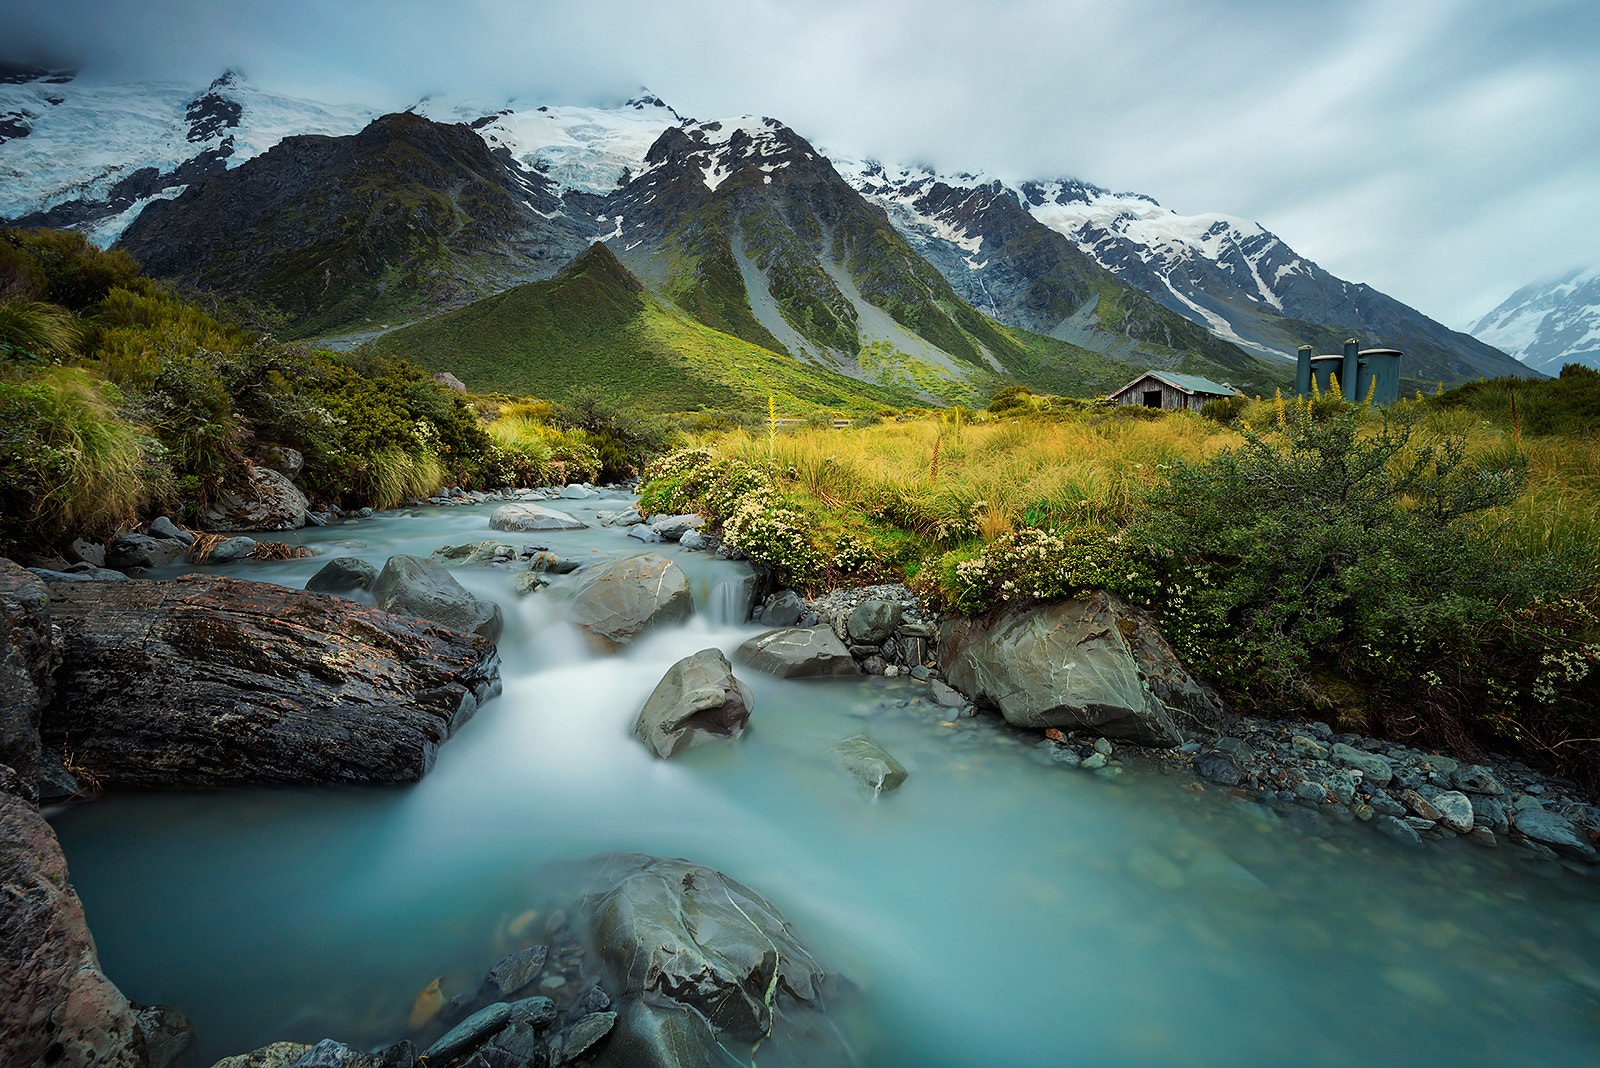 Photograph The Hut of Mount. Cook by Goff Kitsawad on 500px